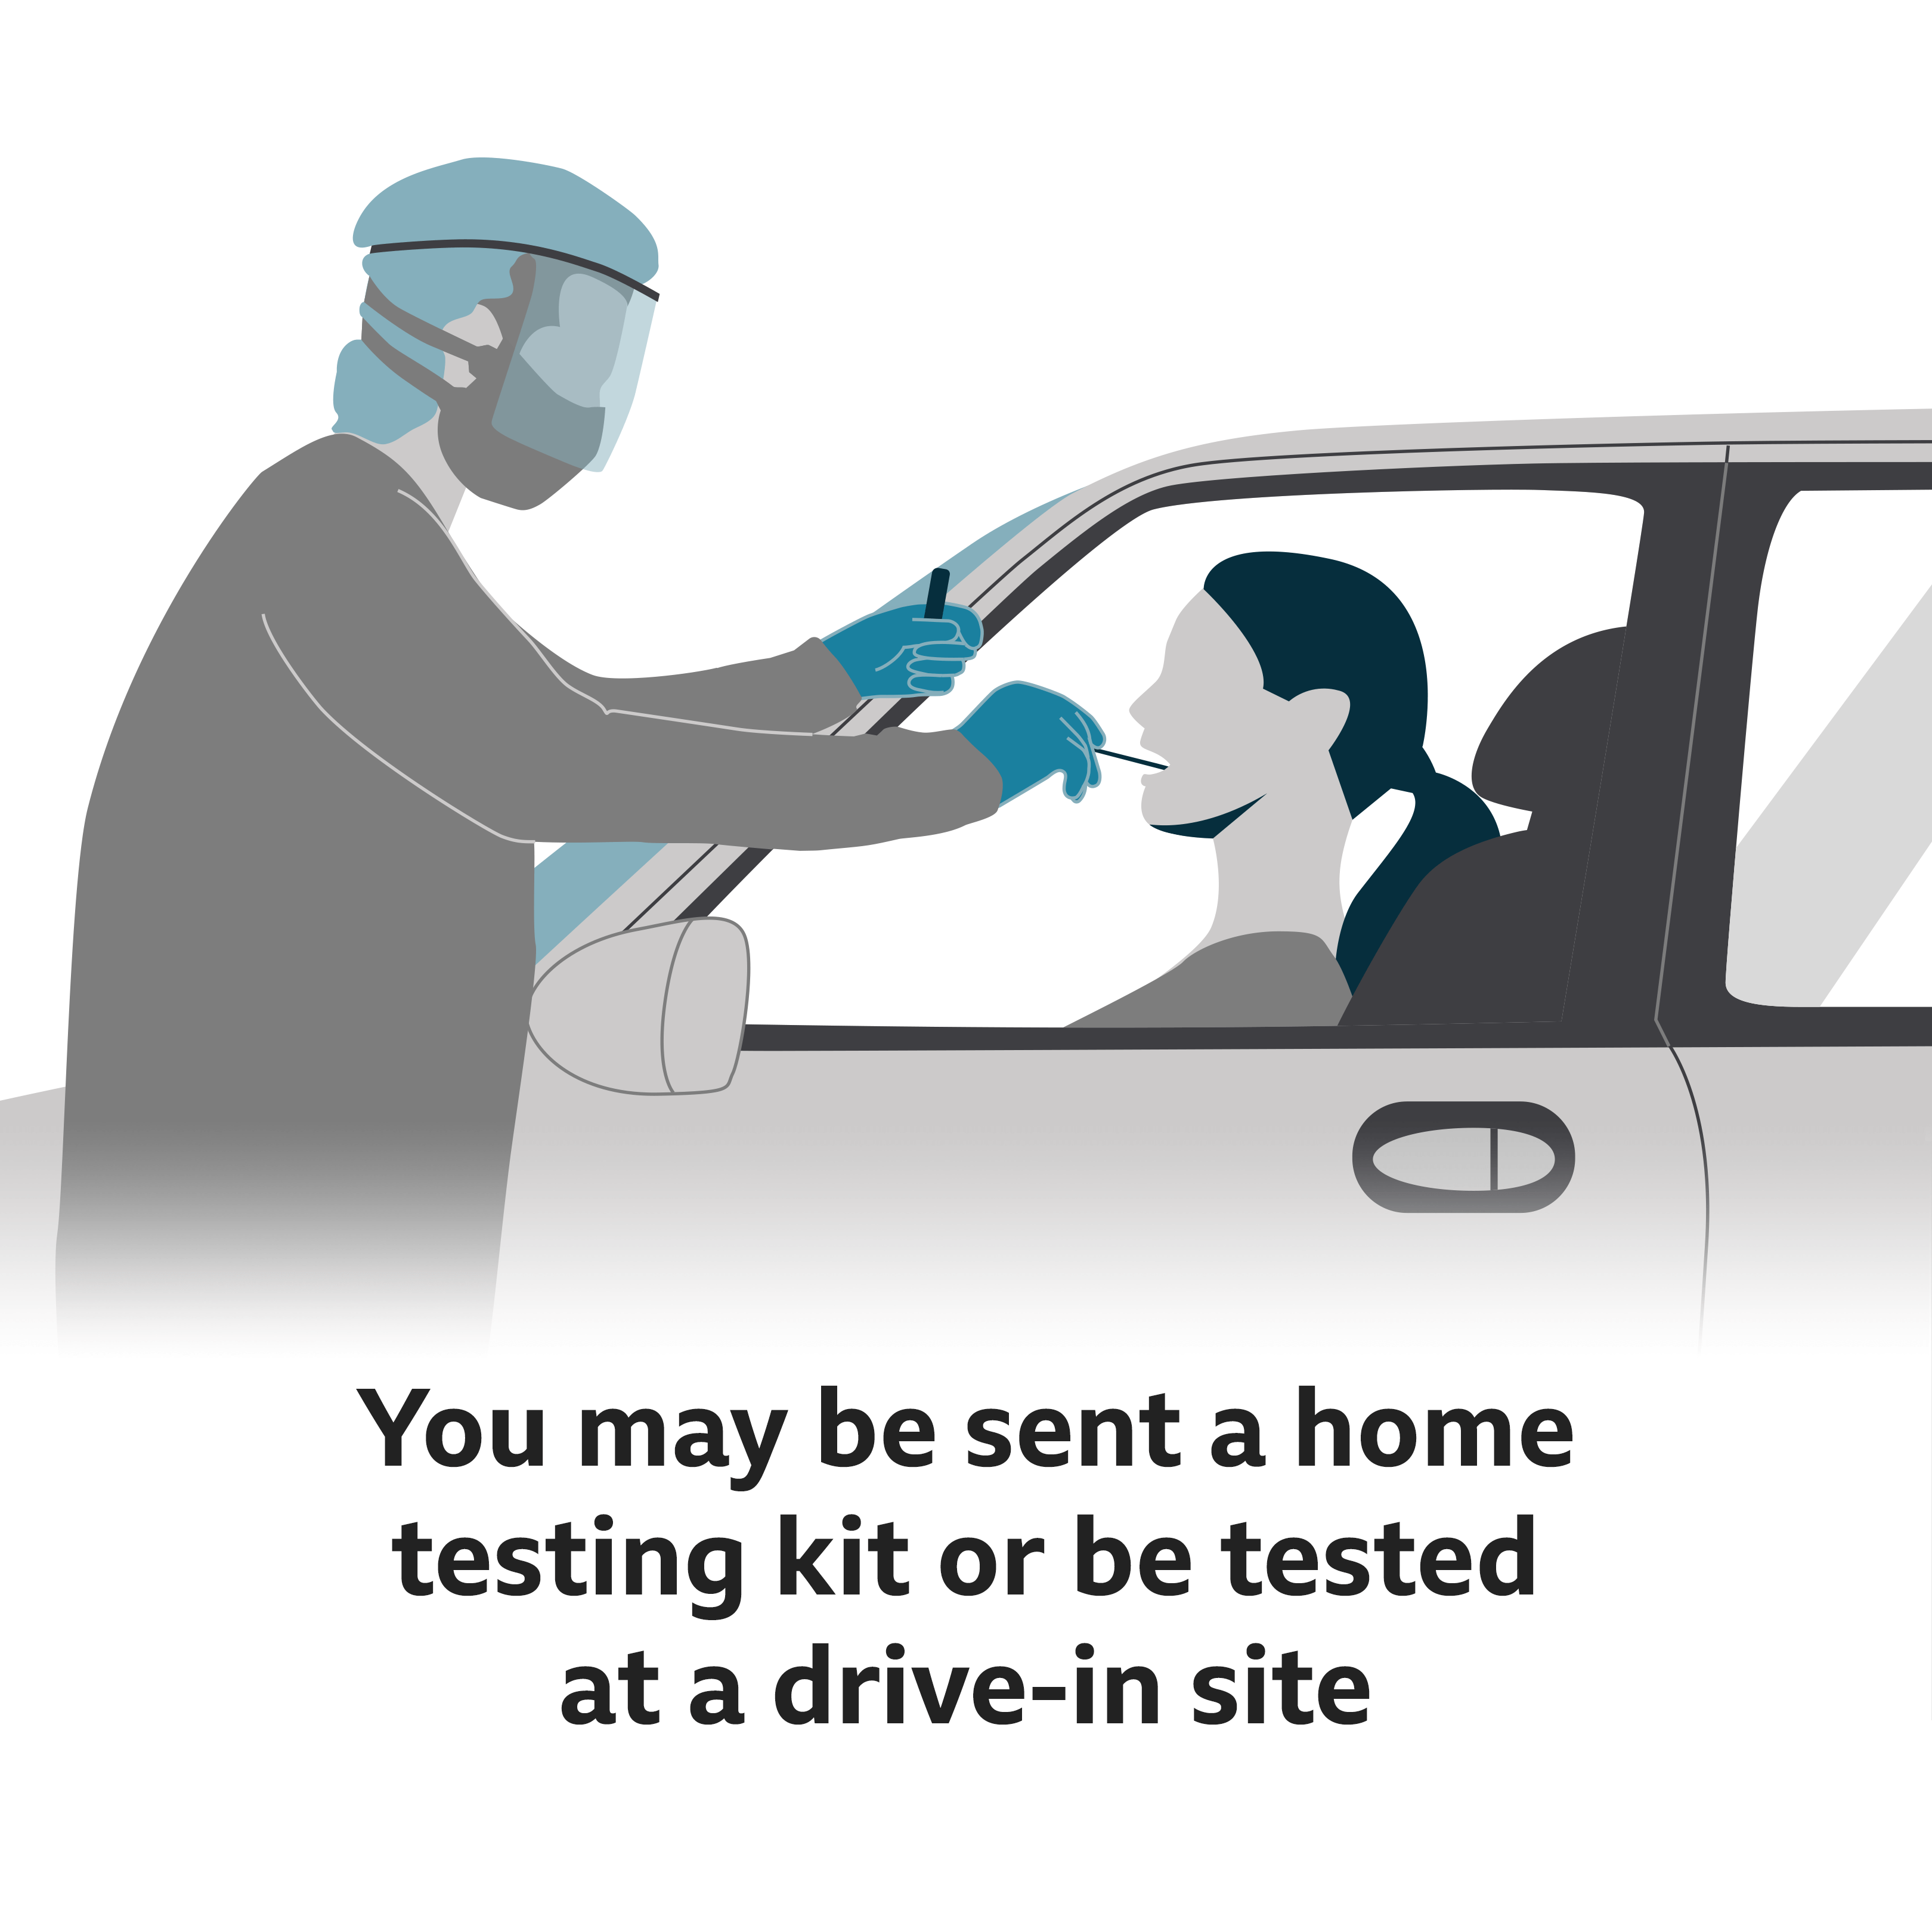 You may be sent a home testing kit or be tested at a drive-in site